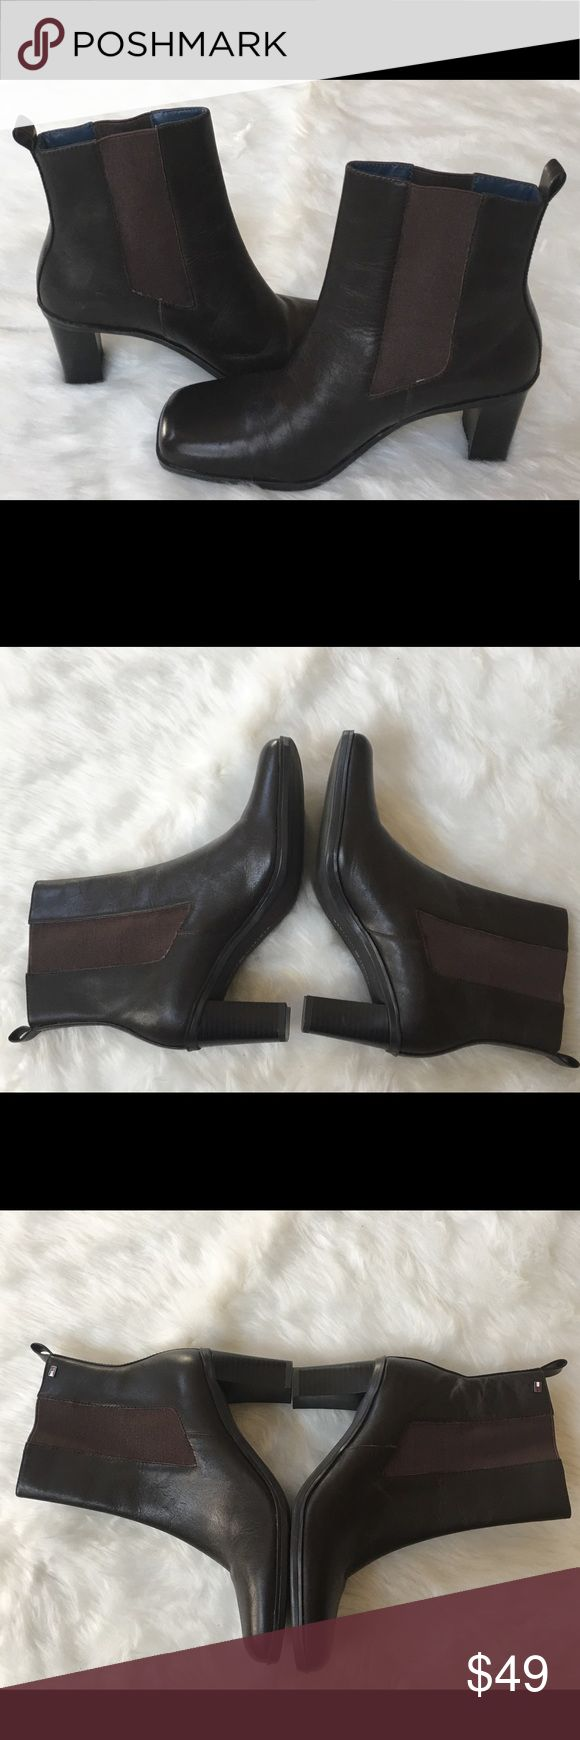 🆕Ladies Chocolate Tommy Boots Brand new never worn | Leather upper | Block heel | Please pay attention to the photos Tommy Hilfiger Shoes Ankle Boots & Booties